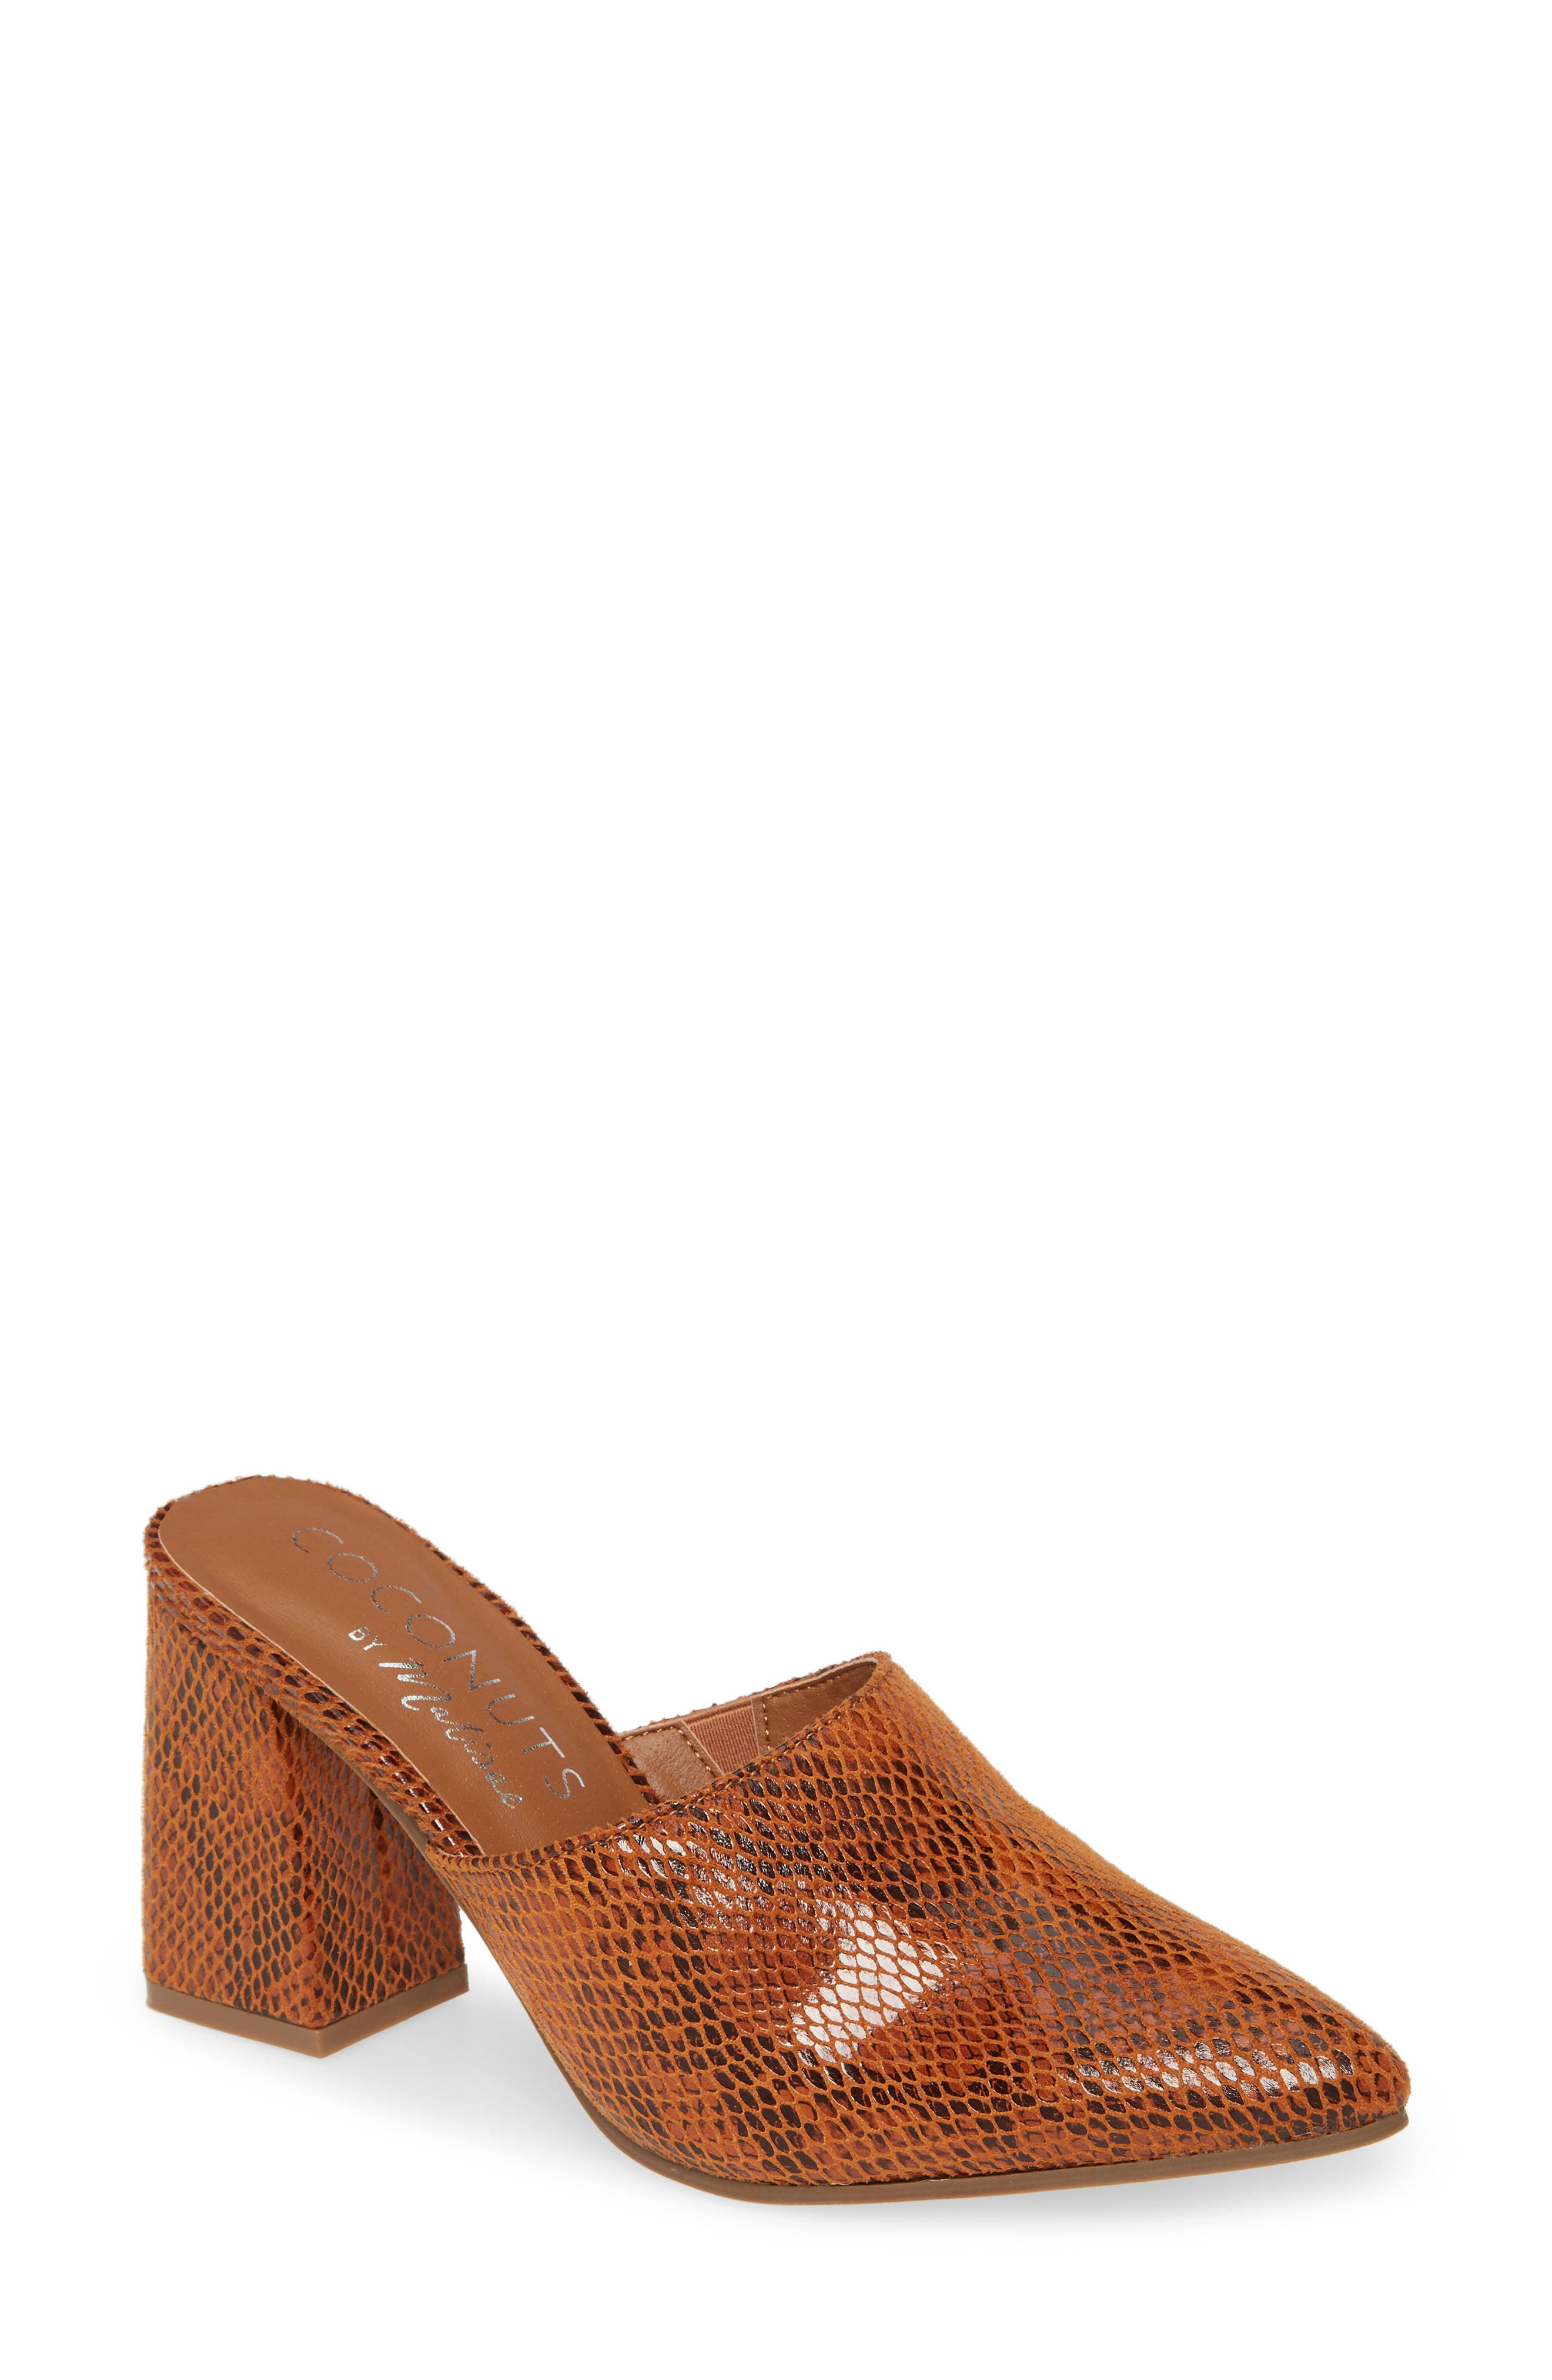 A versatile mule gets a trend-forward update with snake embossing from the pointy-toe to the wrapped, flared heel. Style Name: Coconuts By Matisse High Noon Snake Embossed Mule (Women). Style Number: 5893538. Available in stores.